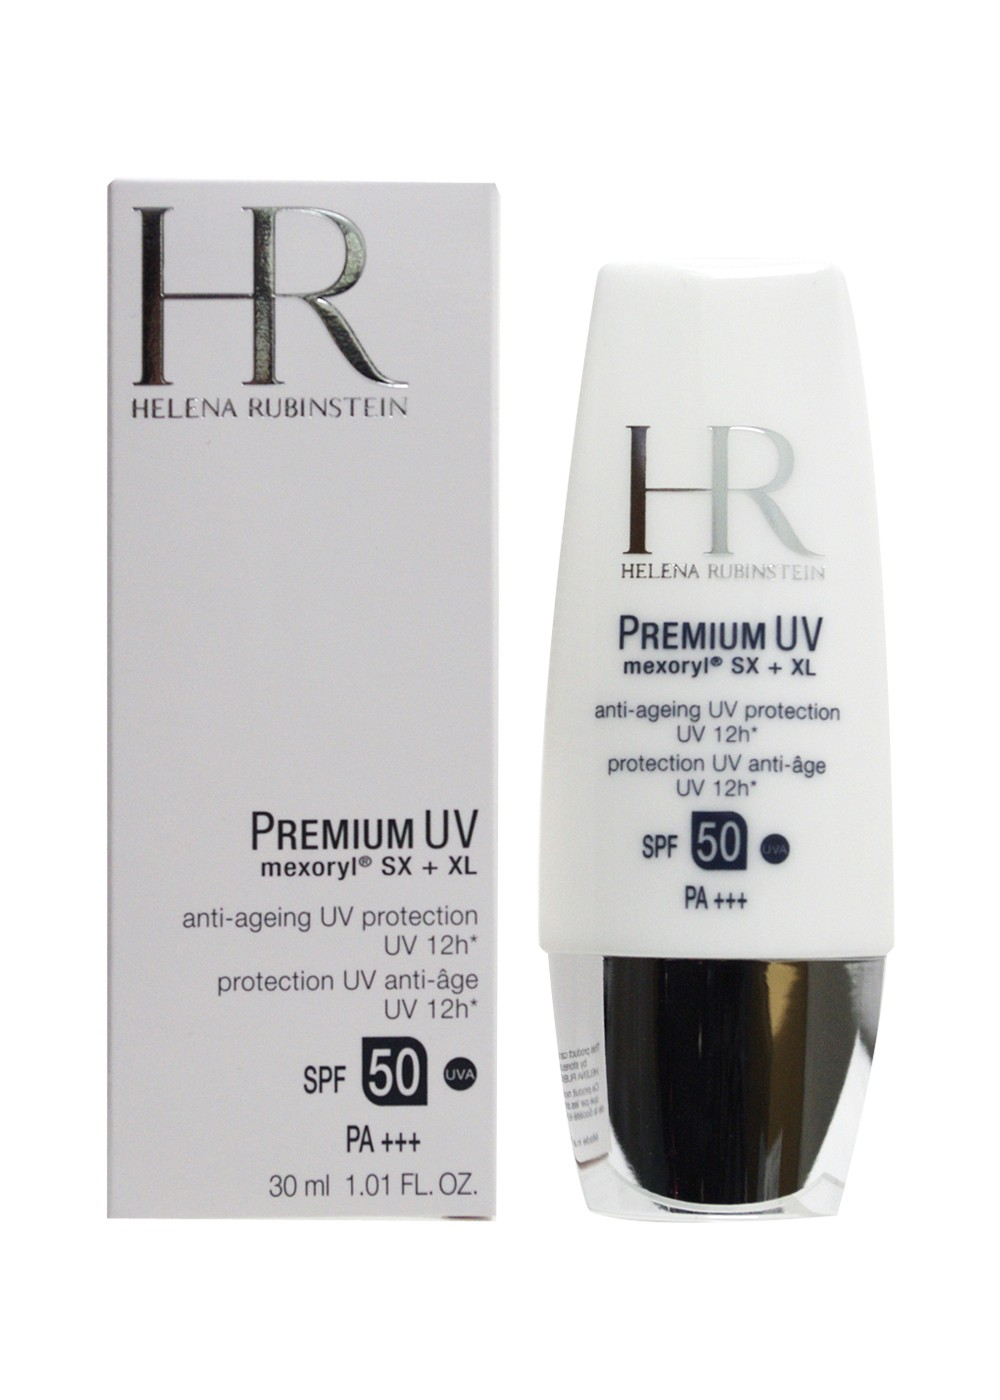 【HELENA RUBINSTEIN】プレミアム UV-AG 50 SPF 50/PA+++|OTHER|メイクアップ|すっぴん風メイク_HELENA RUBINSTEIN|最大43%OFF